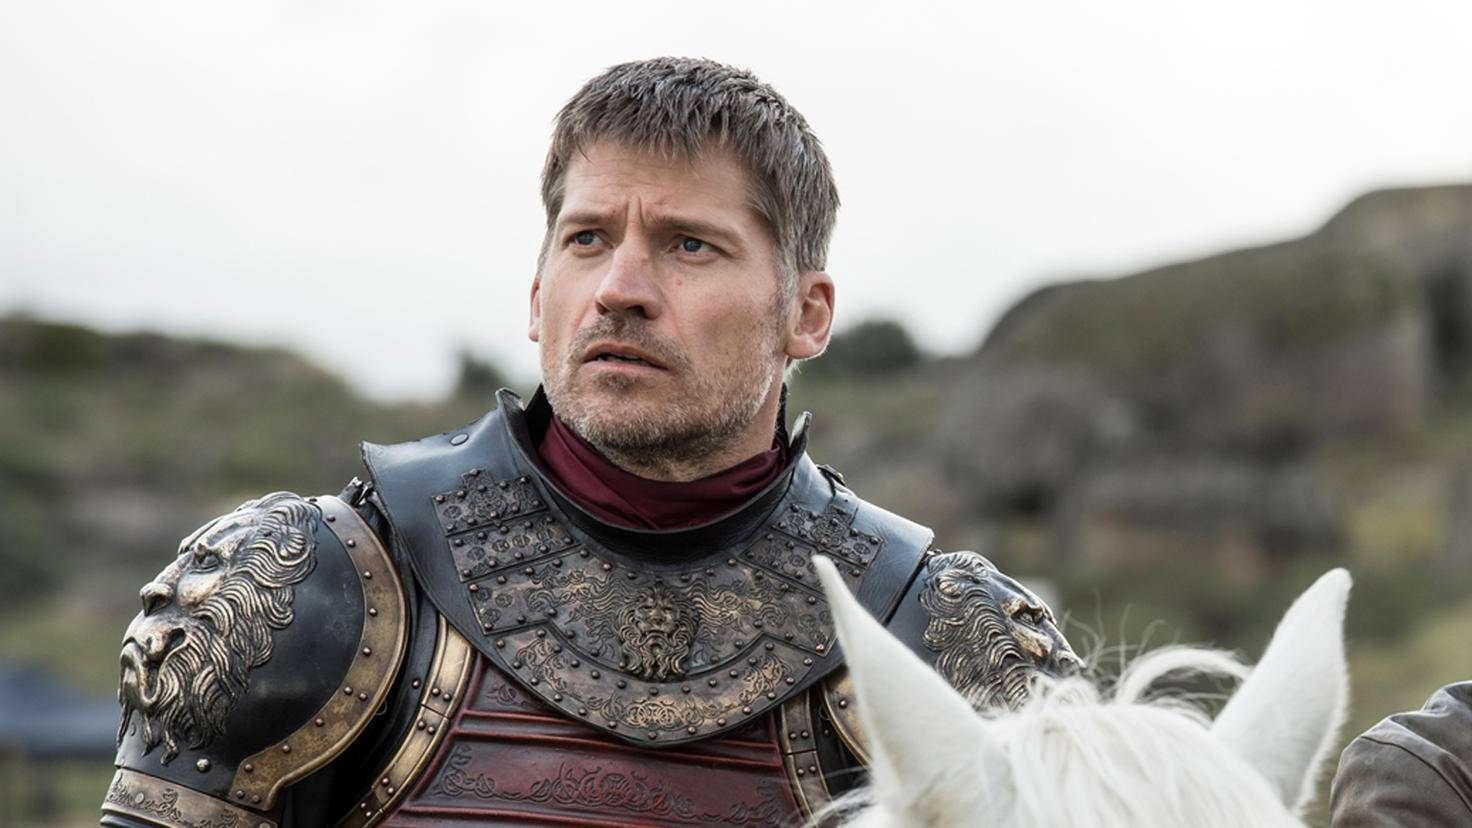 Game of Thrones jaime lannister Nikolaj Coster-Waldau